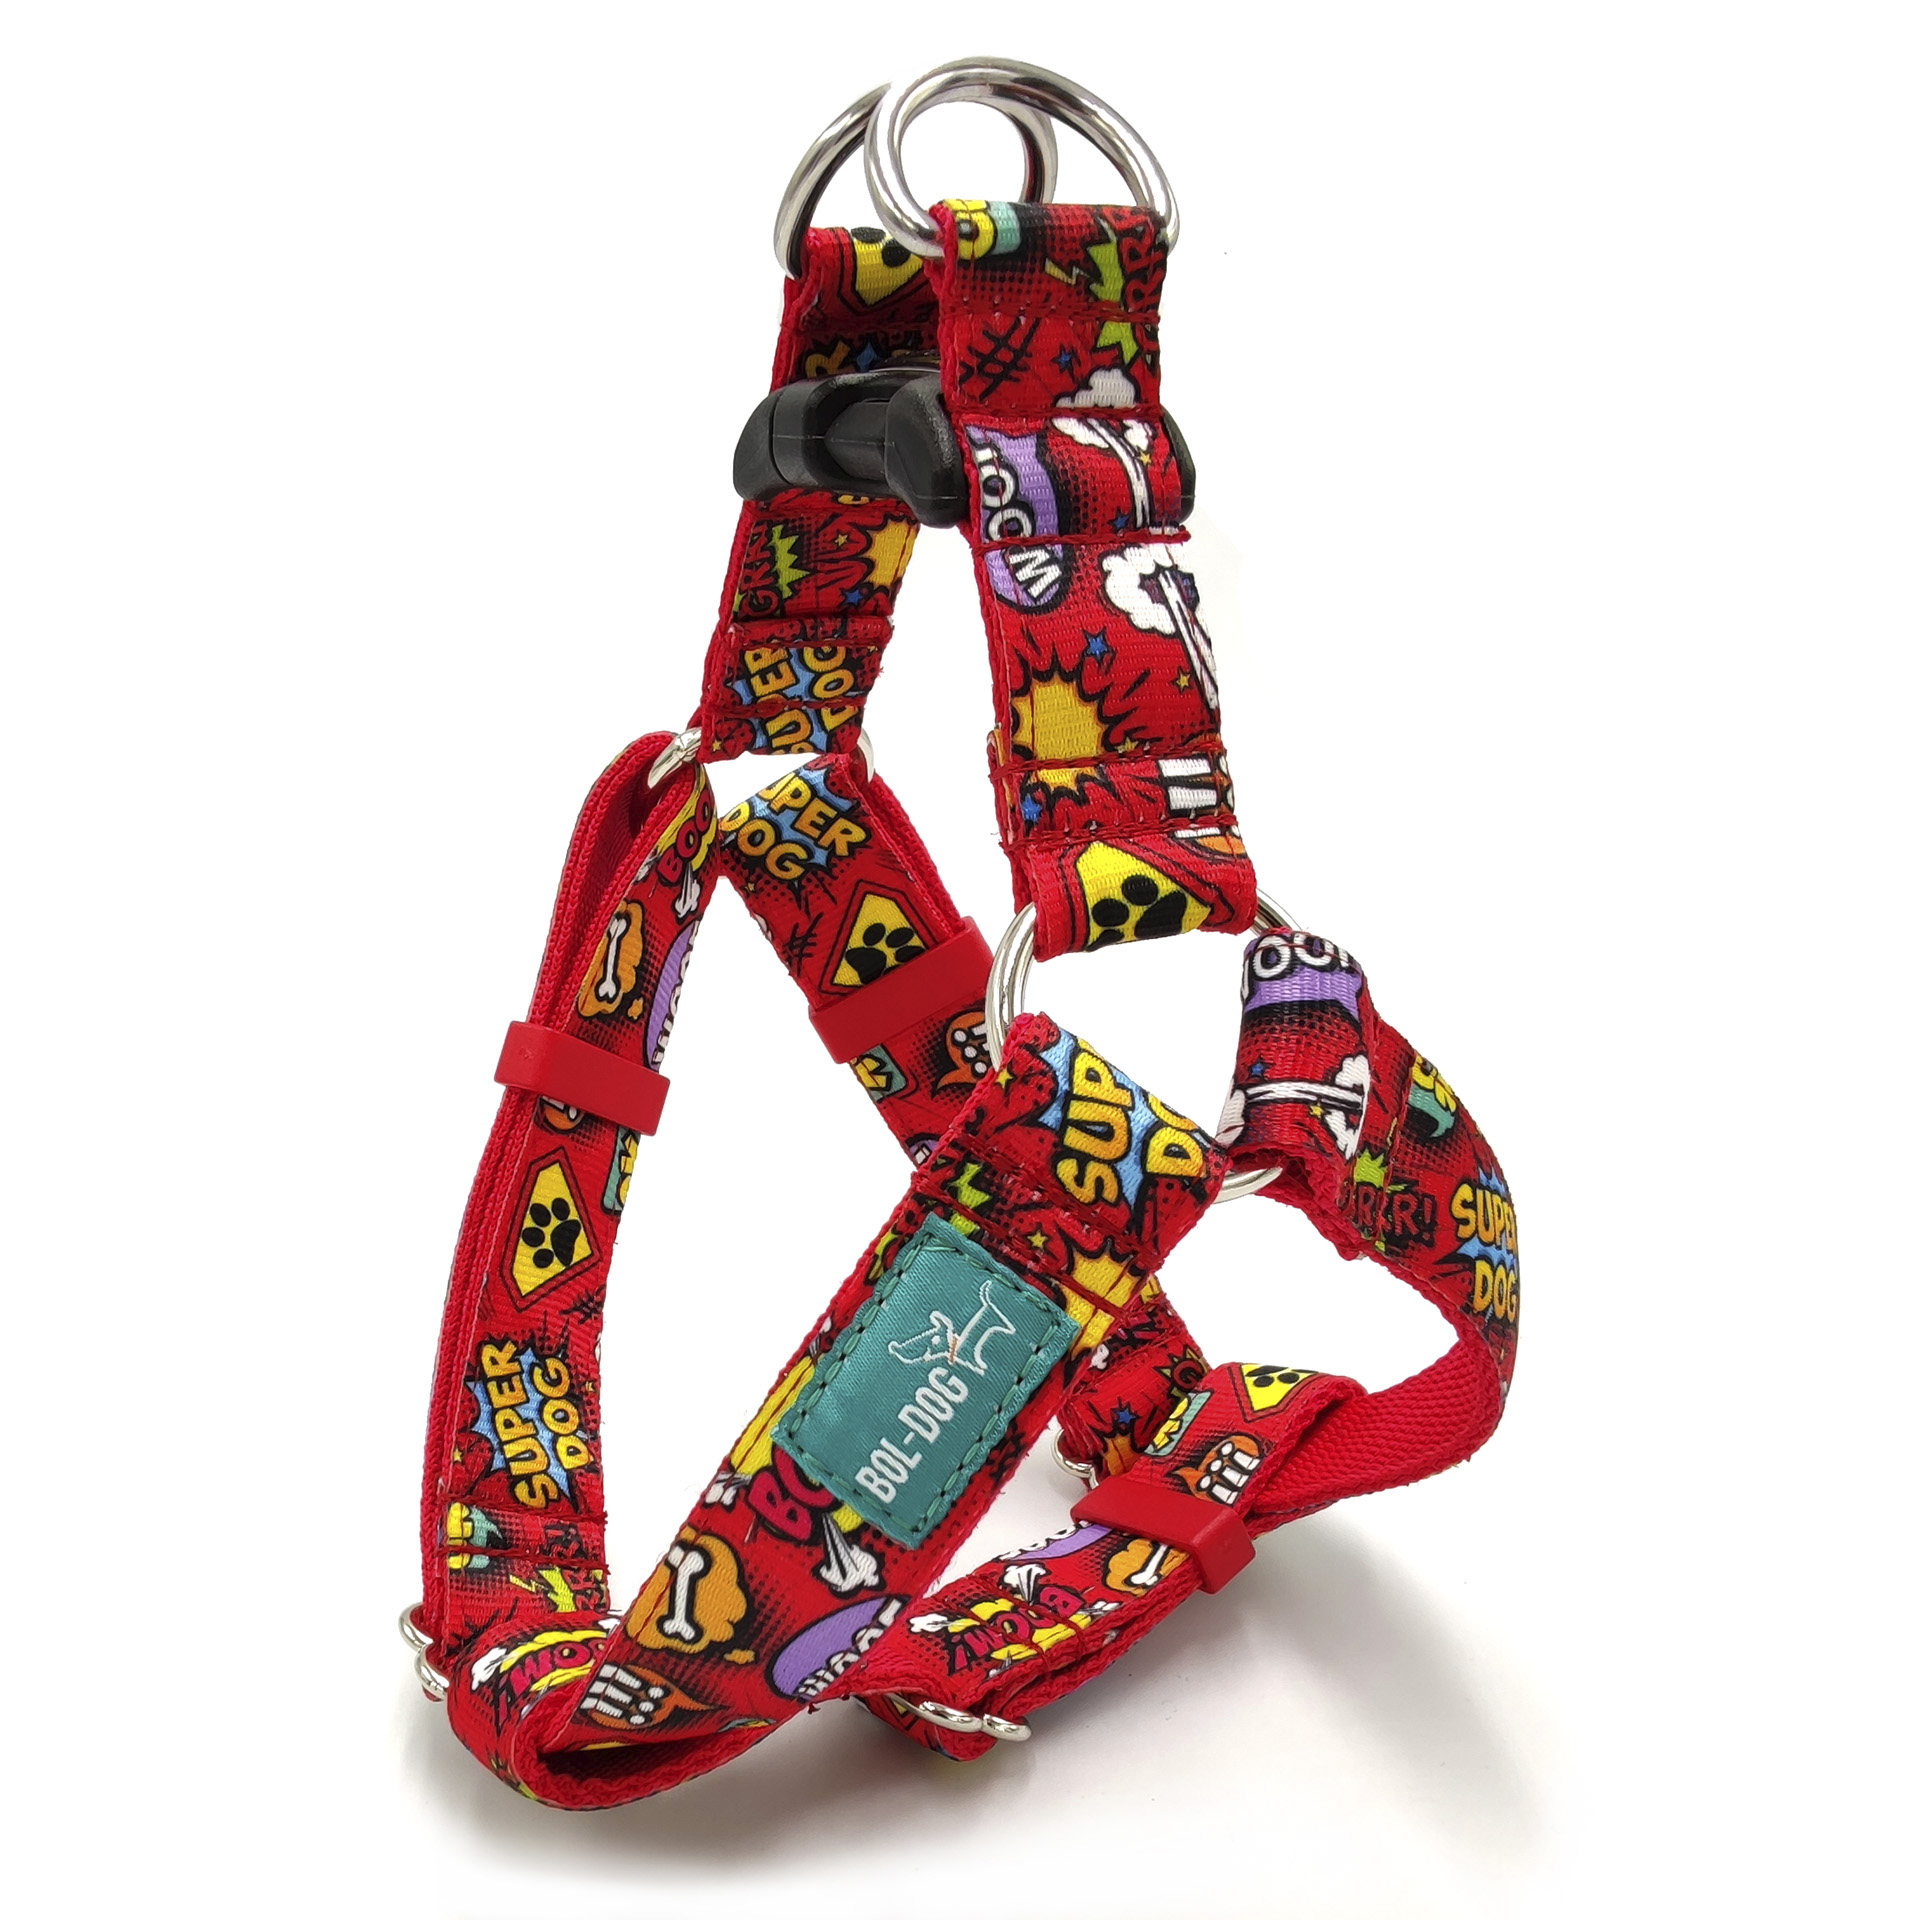 Superdog red dog harness